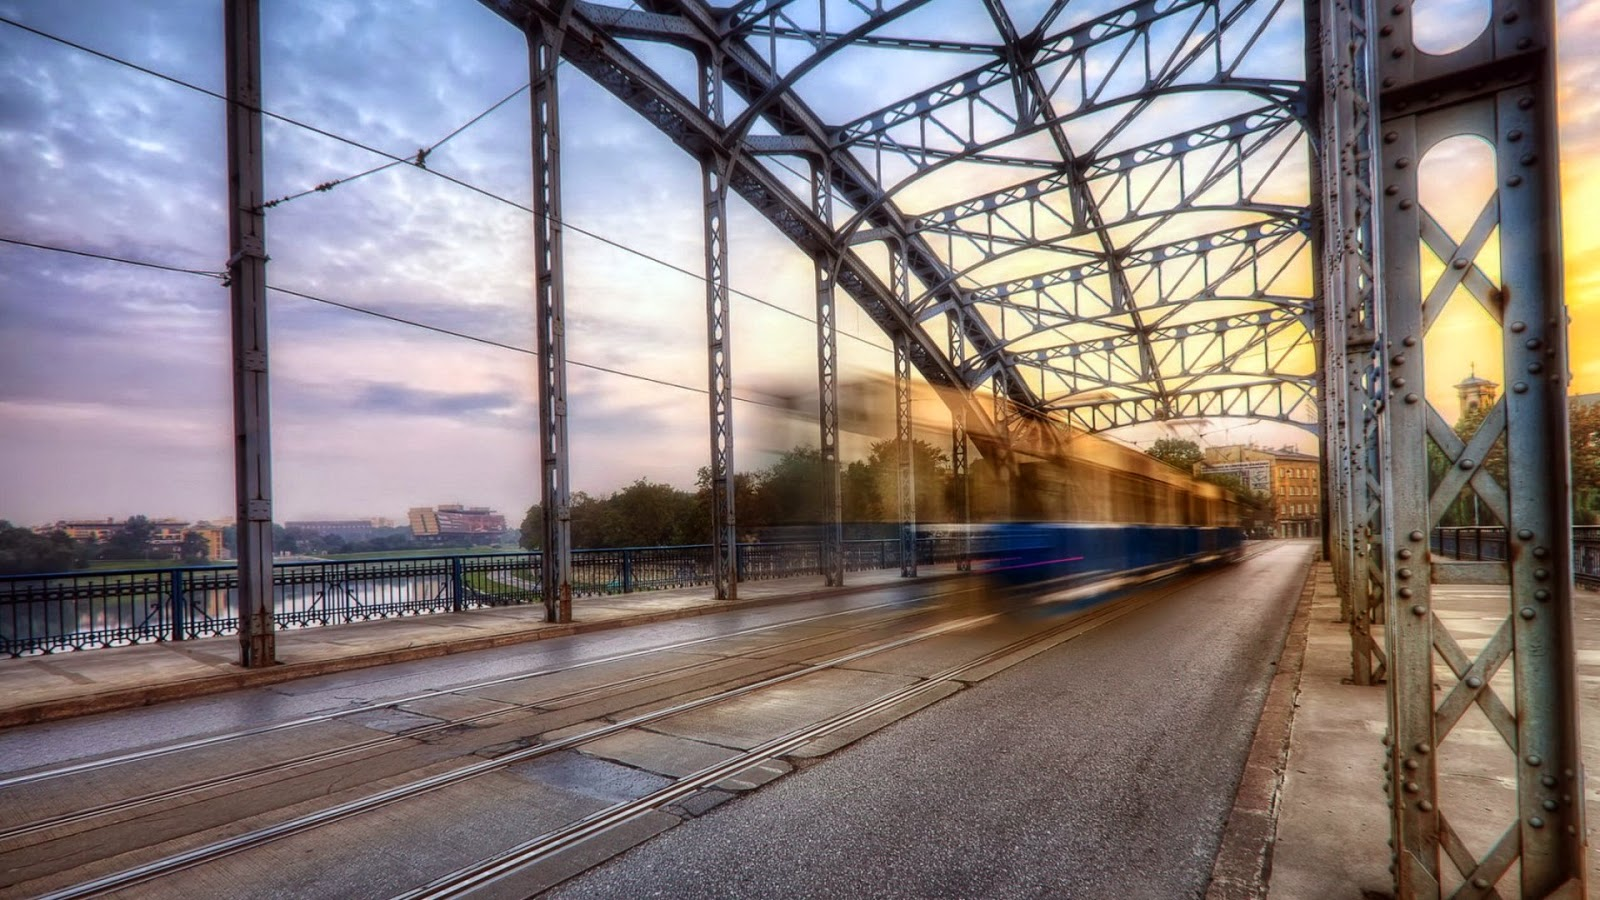 tram-over-bridge-in-long-exposure-hd-wallpaper-494170